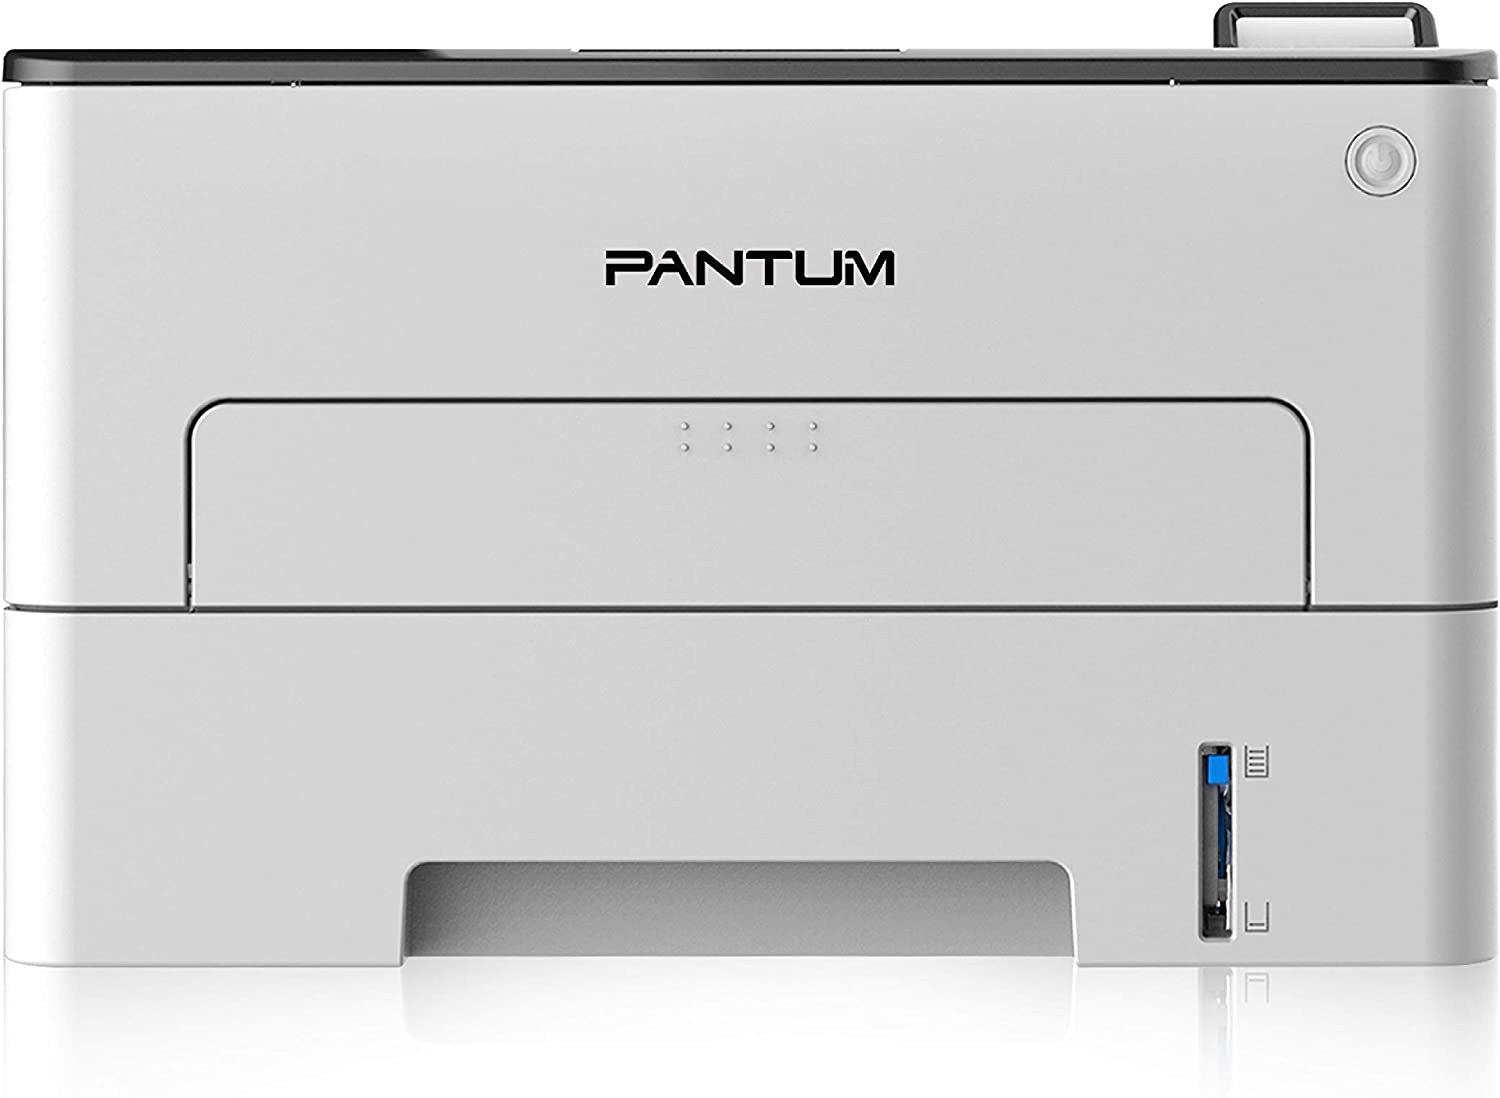 Pantum P3012DW Wireless Monochrome Laser Printer for Home Office Use with Auto Two-Sided Printing